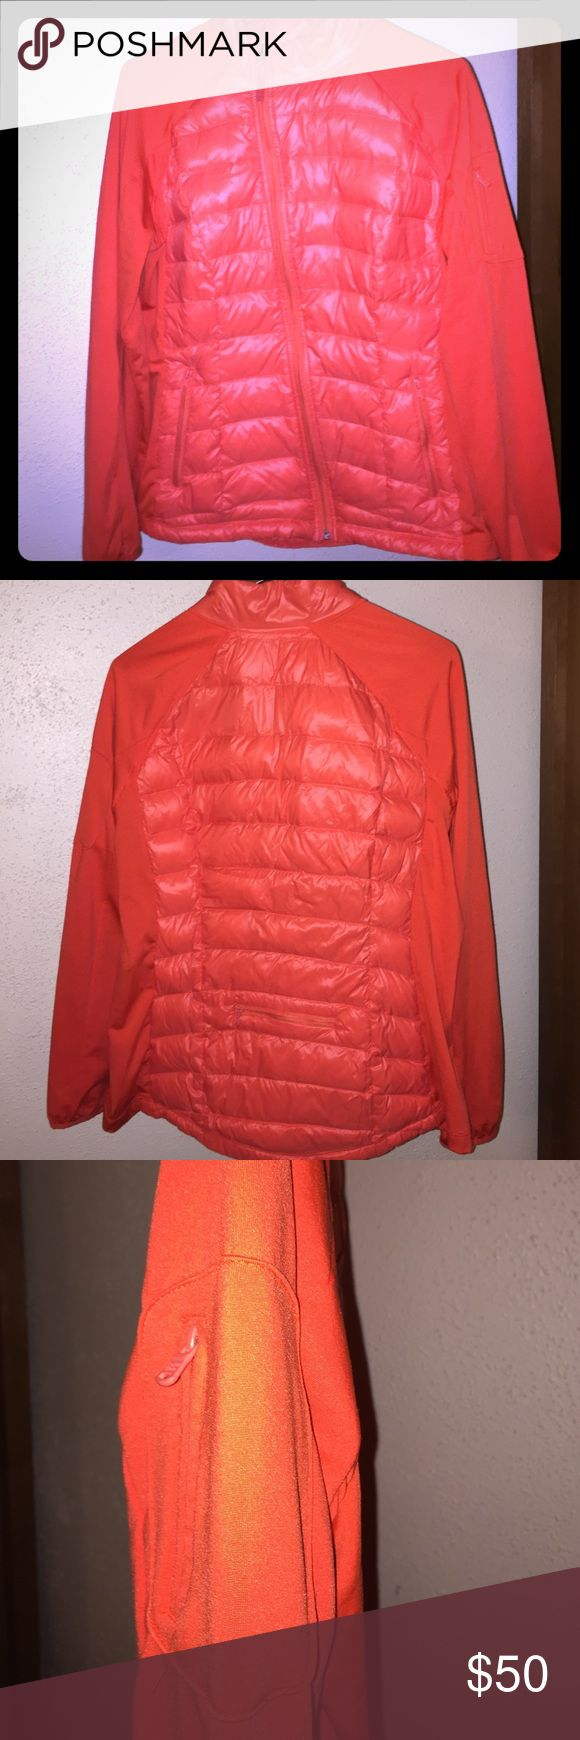 Calvin Klein zip up down jacket Orange Calvin Klein versatile down jacket, 90% duckdown, 10% Waterfowl feathers. Nylon body, 92% polyester and 8%spandex sleeves with hole for thumbs. Worn a couple of times, in great condition and looks new. Size XL womans. Calvin Klein Jackets & Coats Puffers